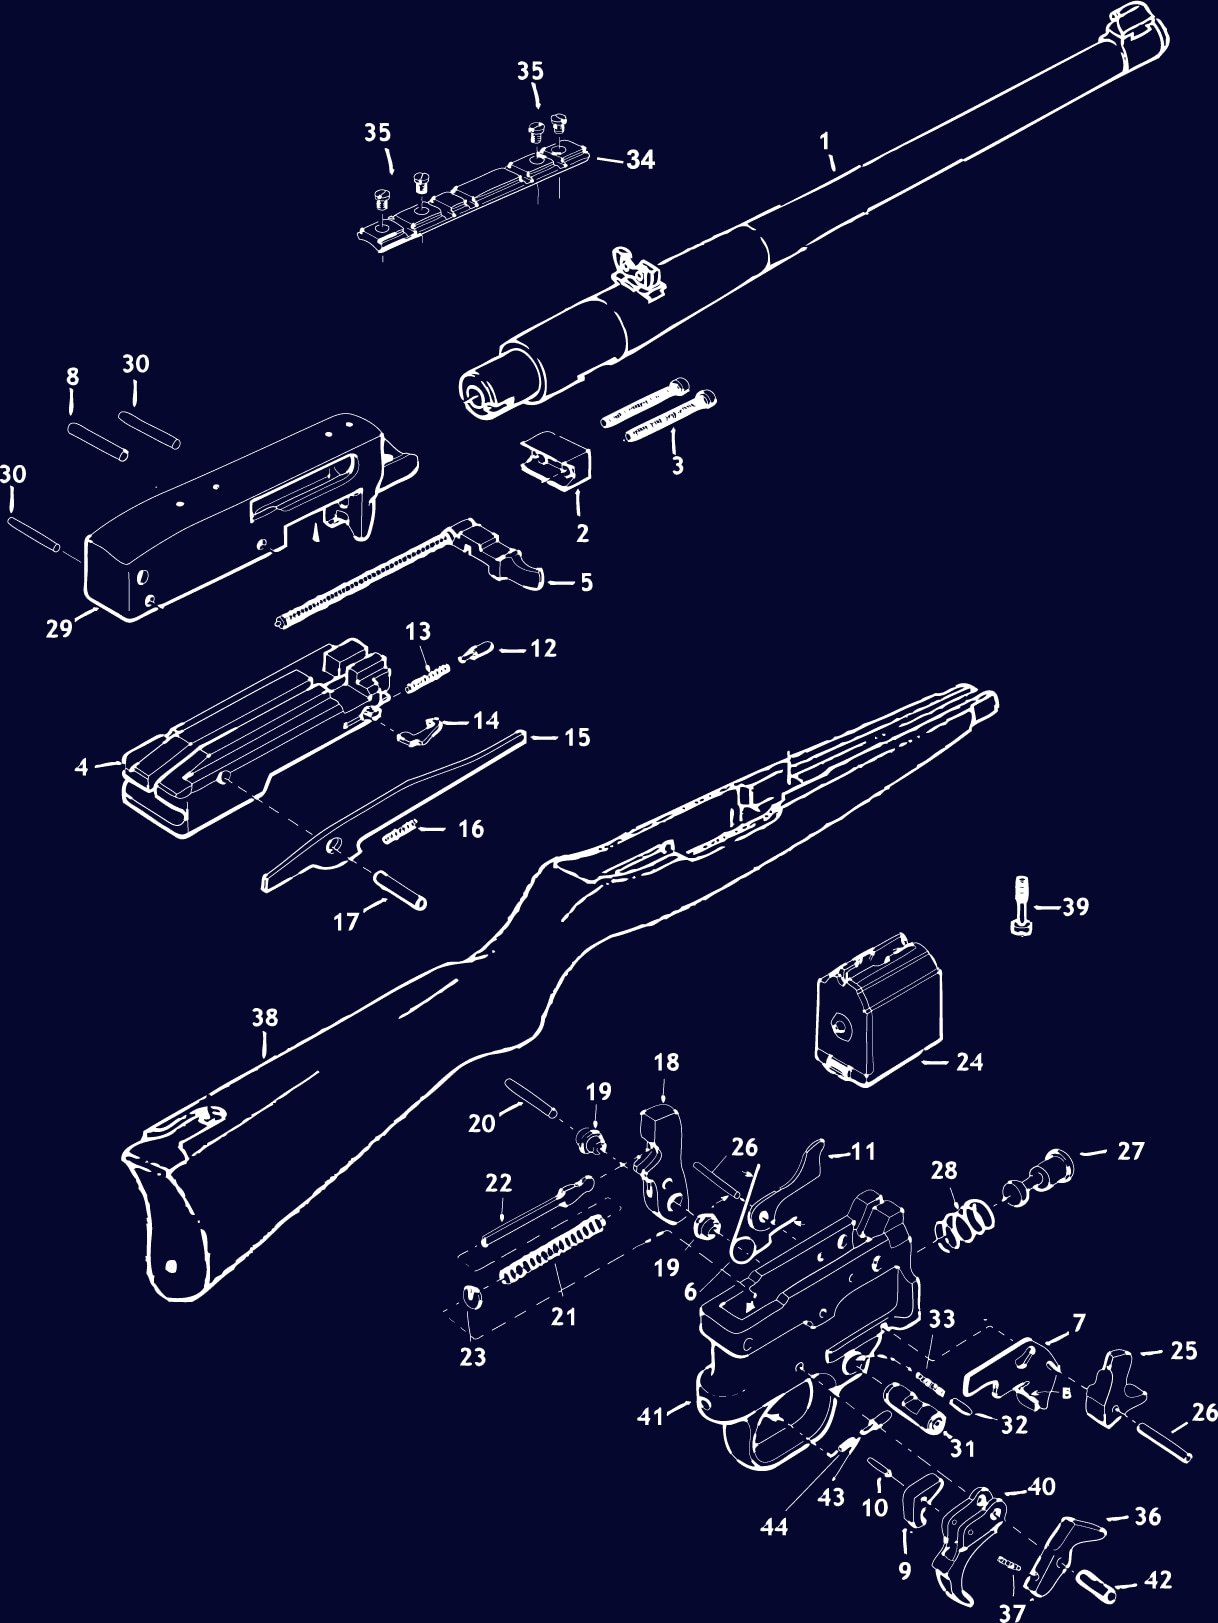 1022 Rifle Diagrams 1022 Rifle Schematics 1022 Rifle Exploded